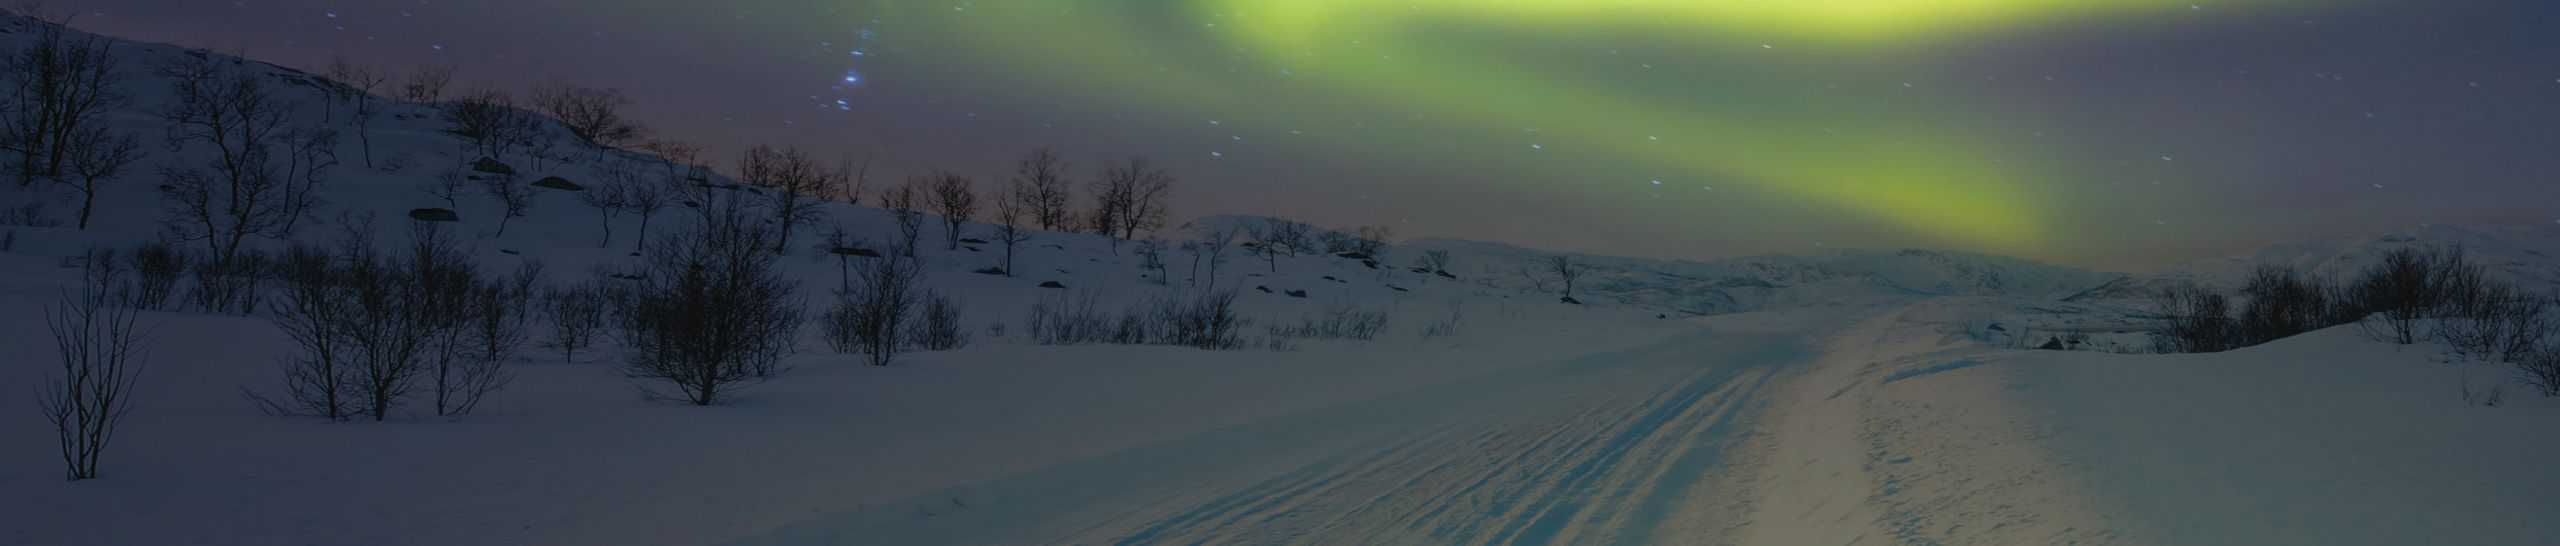 snowy road with northern lights in the sky